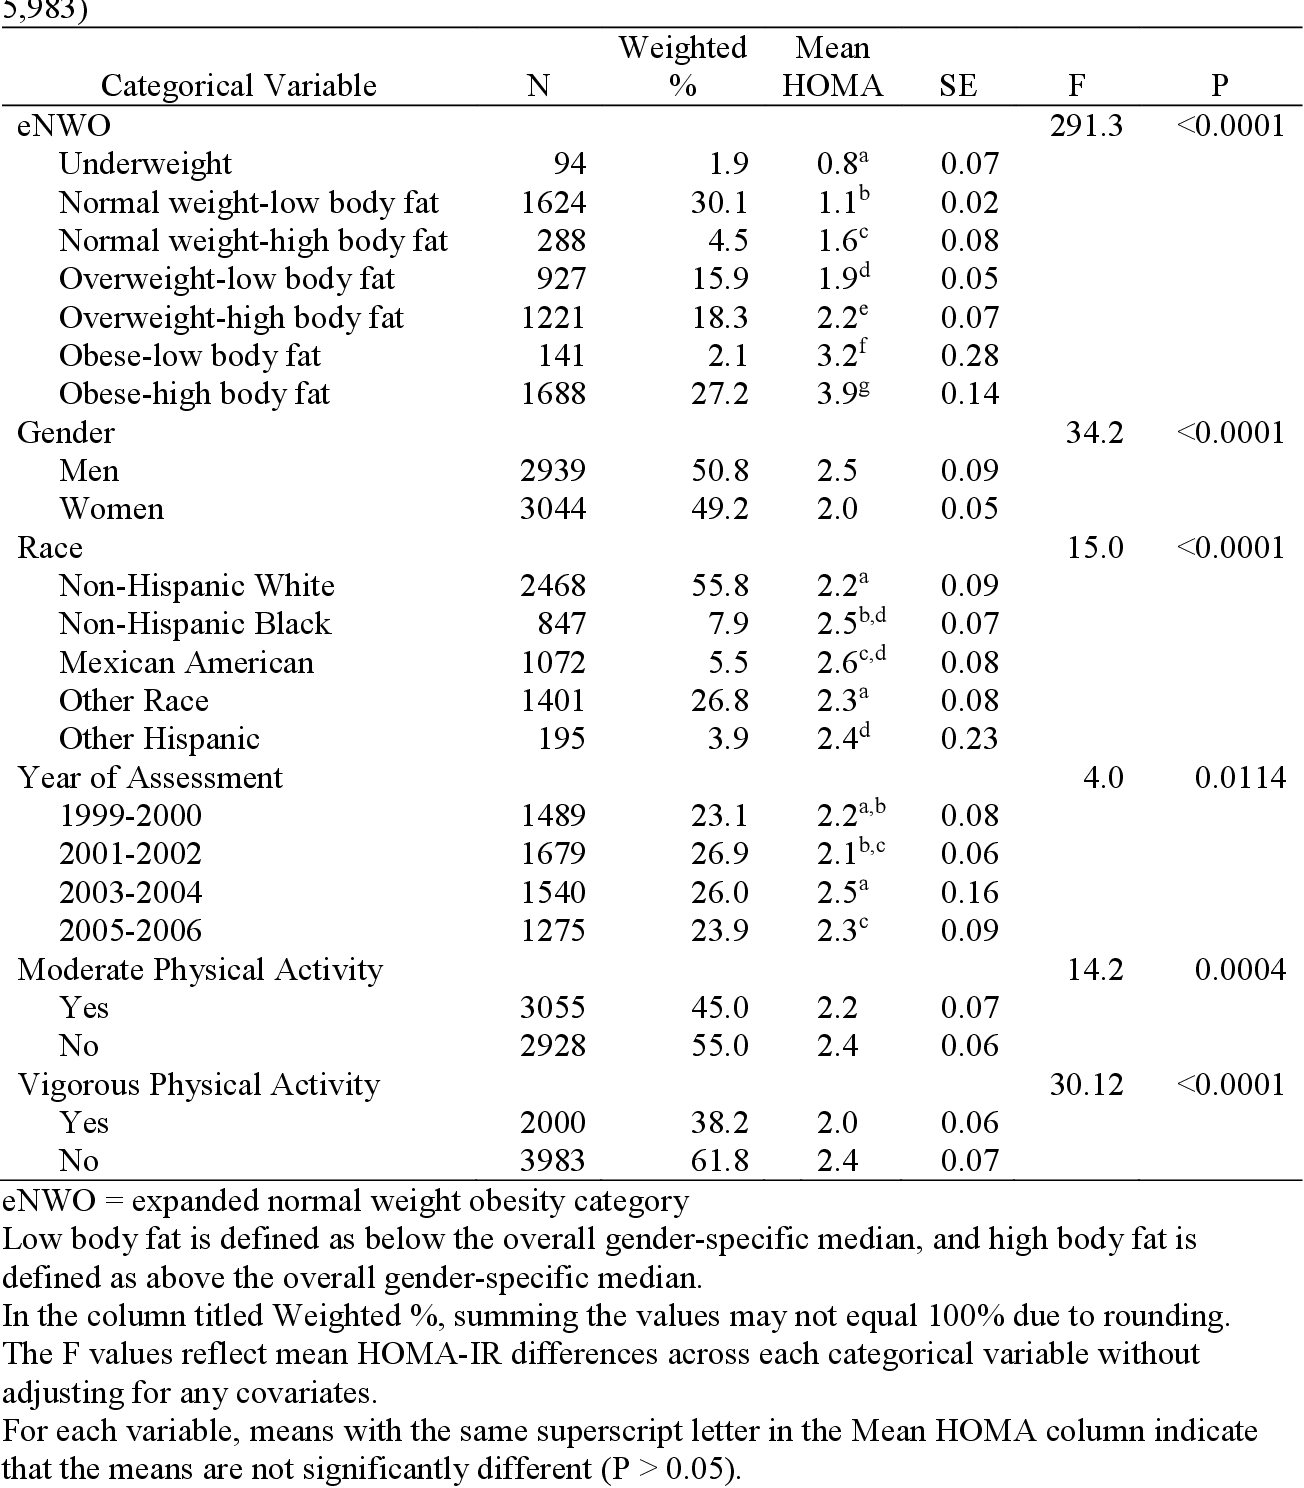 Association Between Expanded Normal Weight Obesity And Insulin Resistance Among U S Adults In The National Health And Nutrition Examination Survey Semantic Scholar